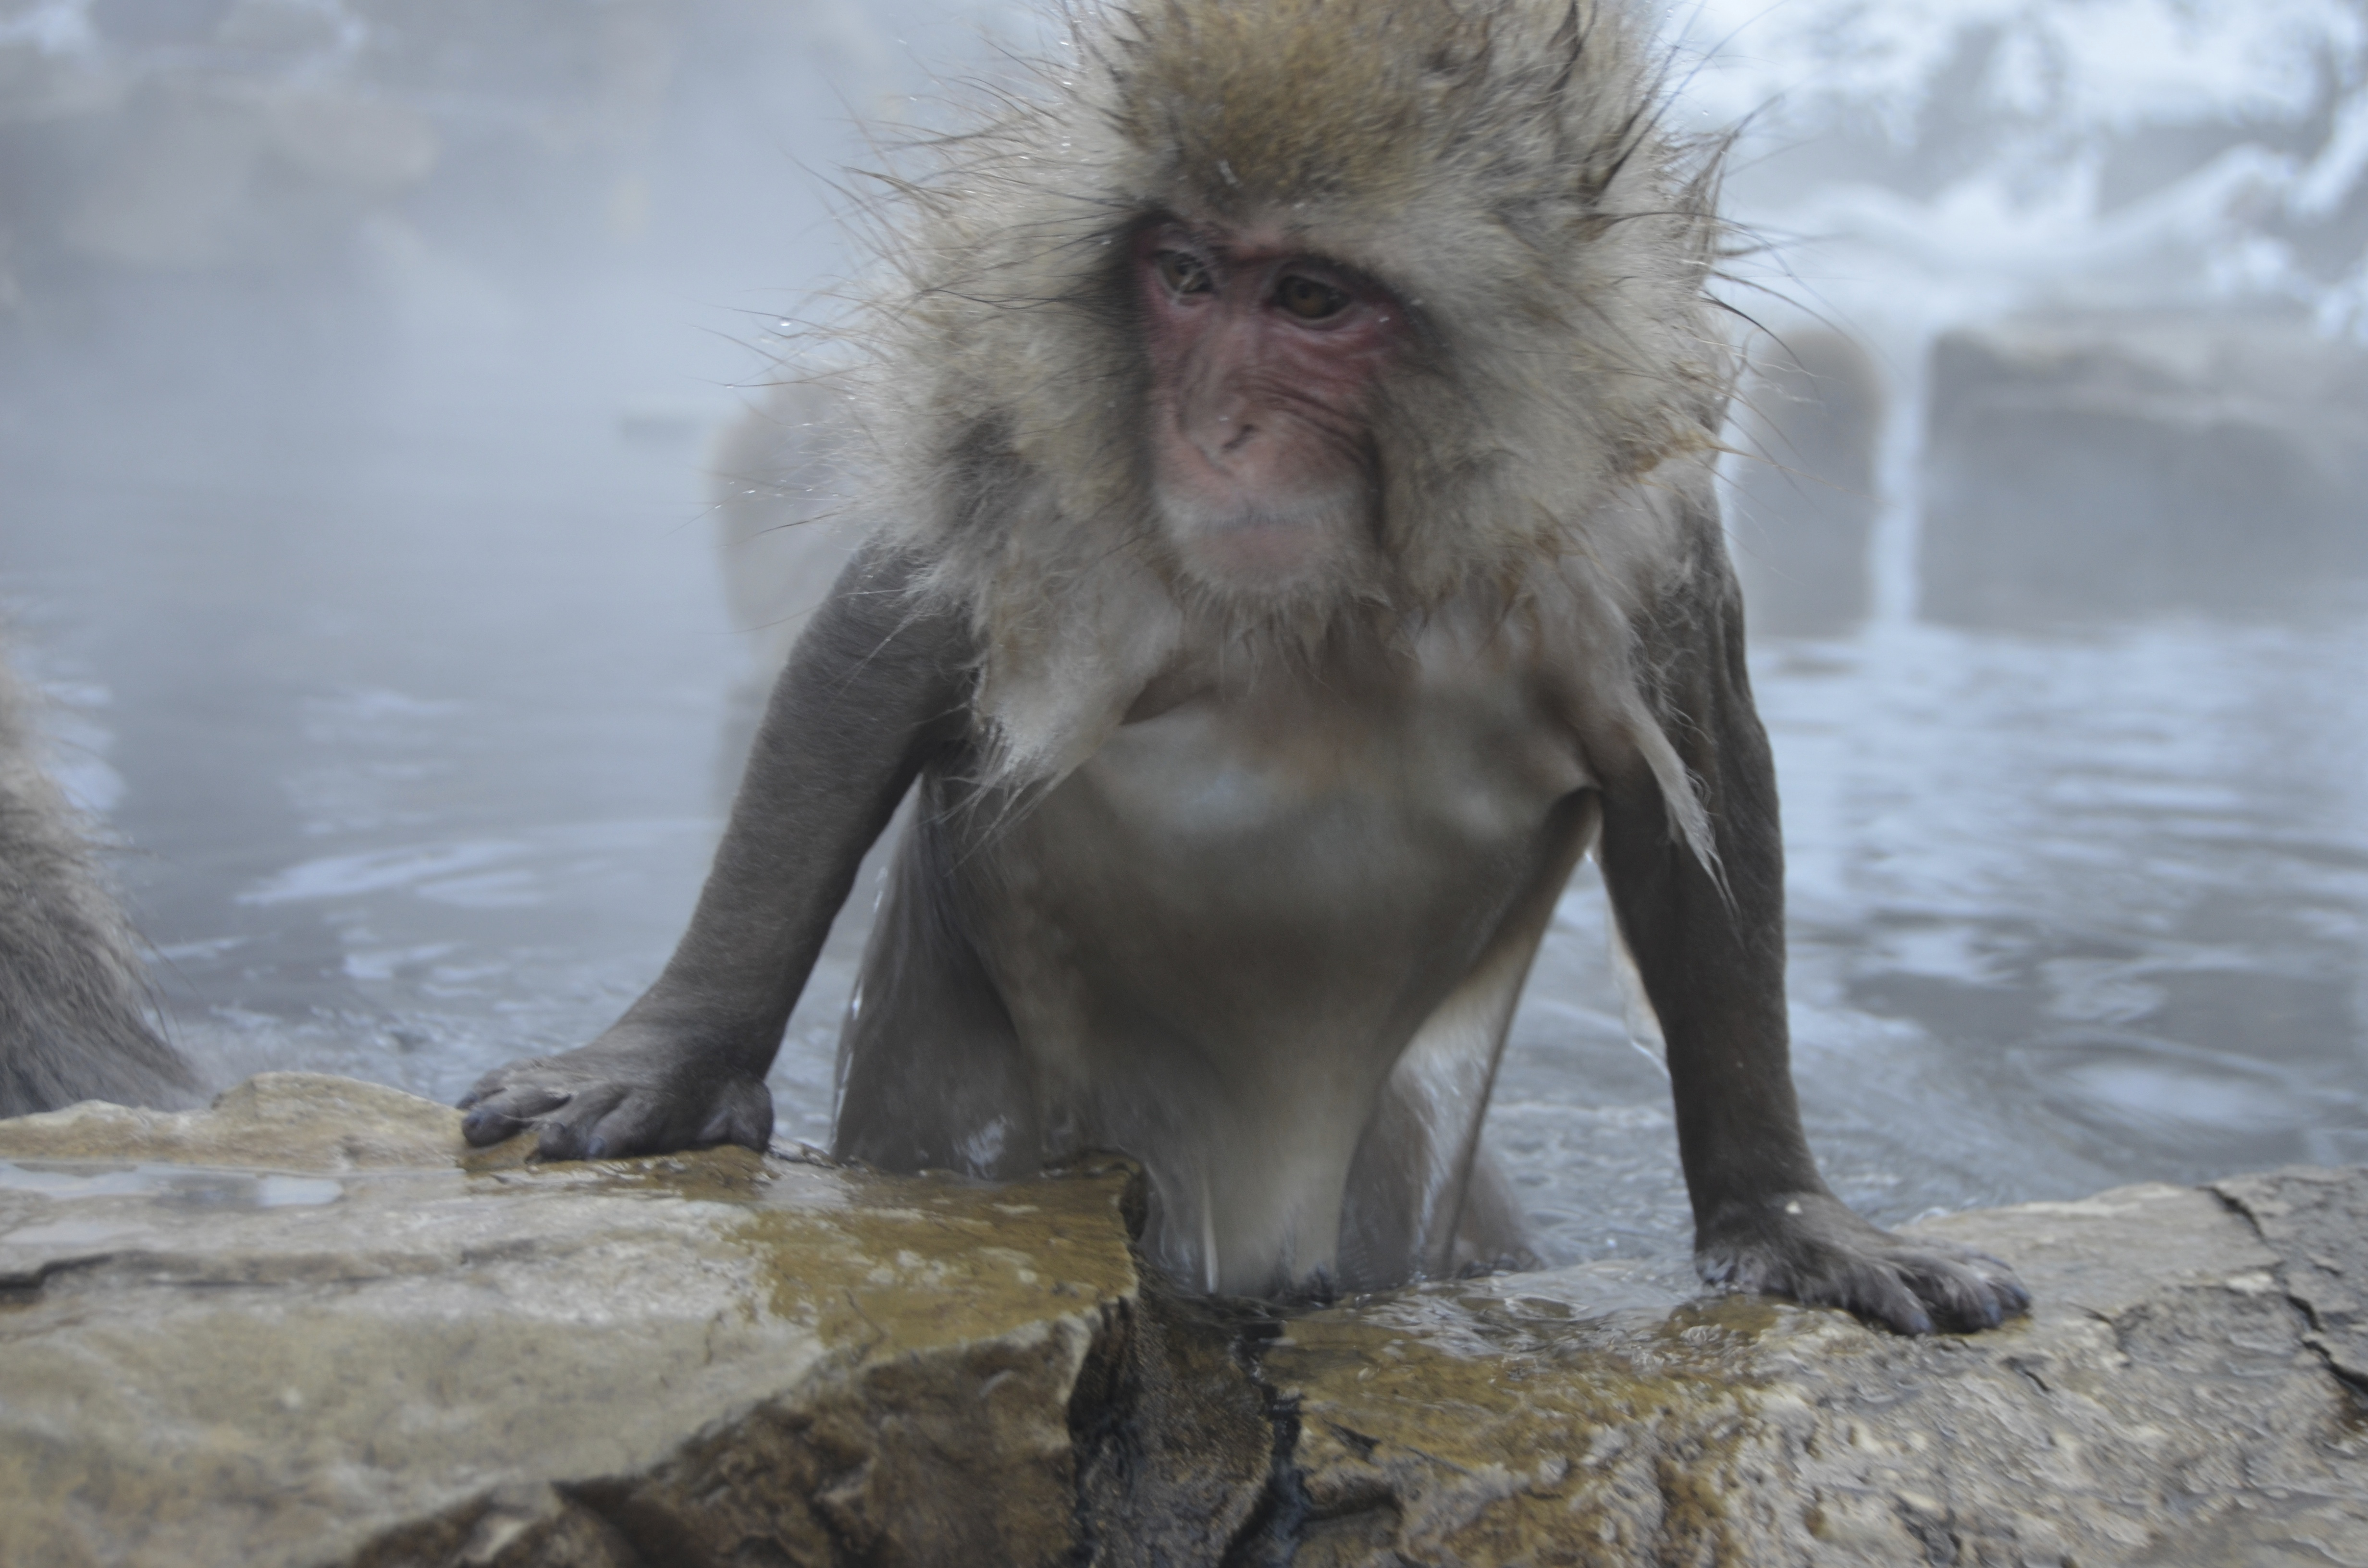 photo snow monkey getting out of a hotspring susan shain